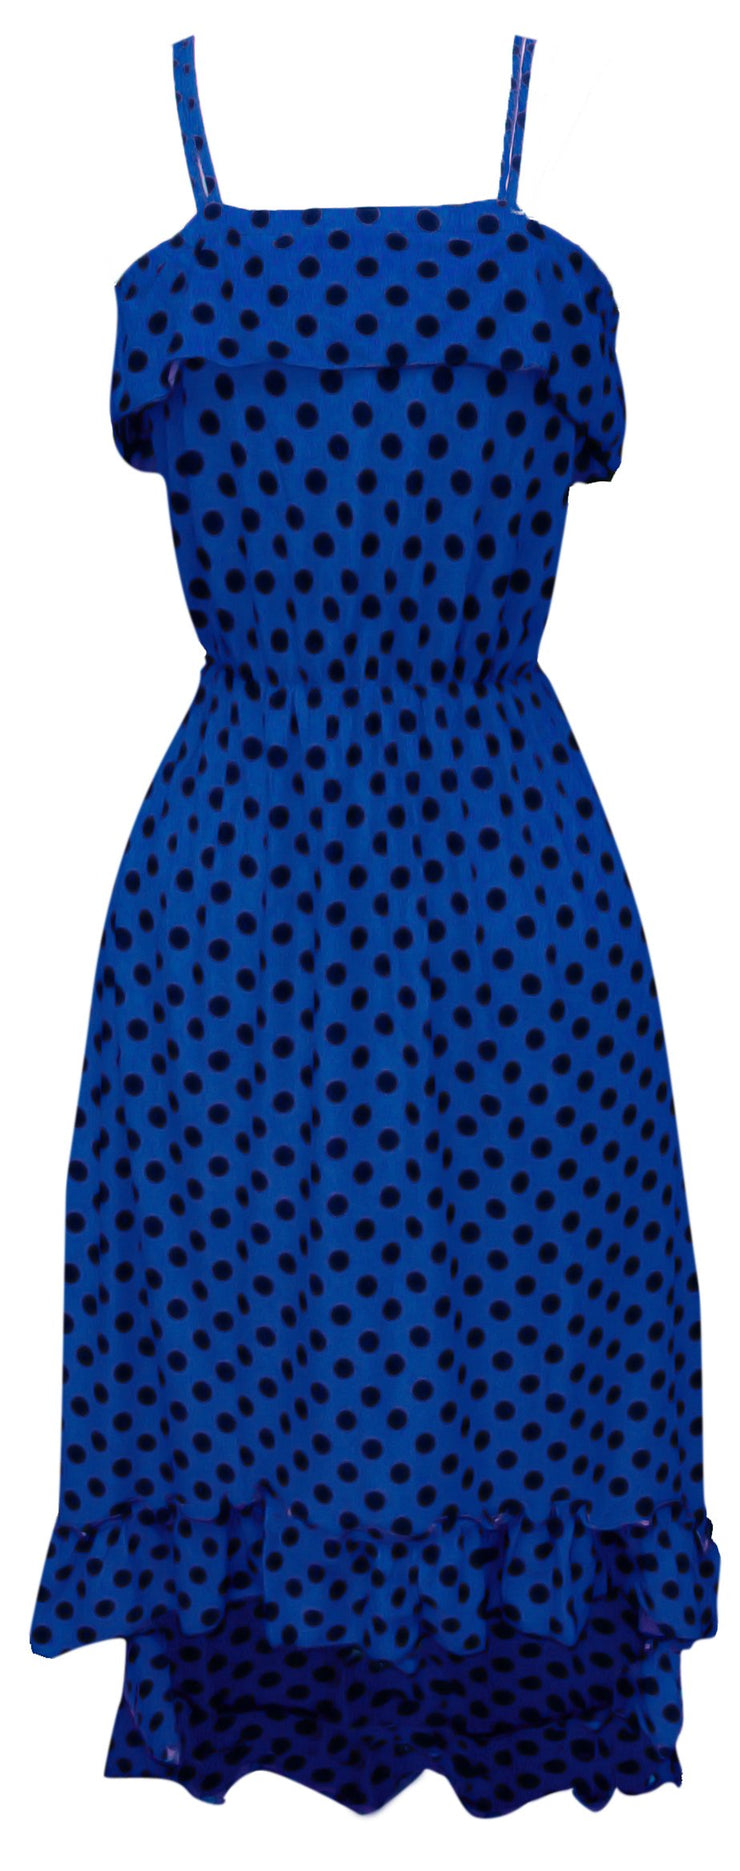 A1285-PolkaDot-Maxi-Dress-Blue-BLK-M-SM